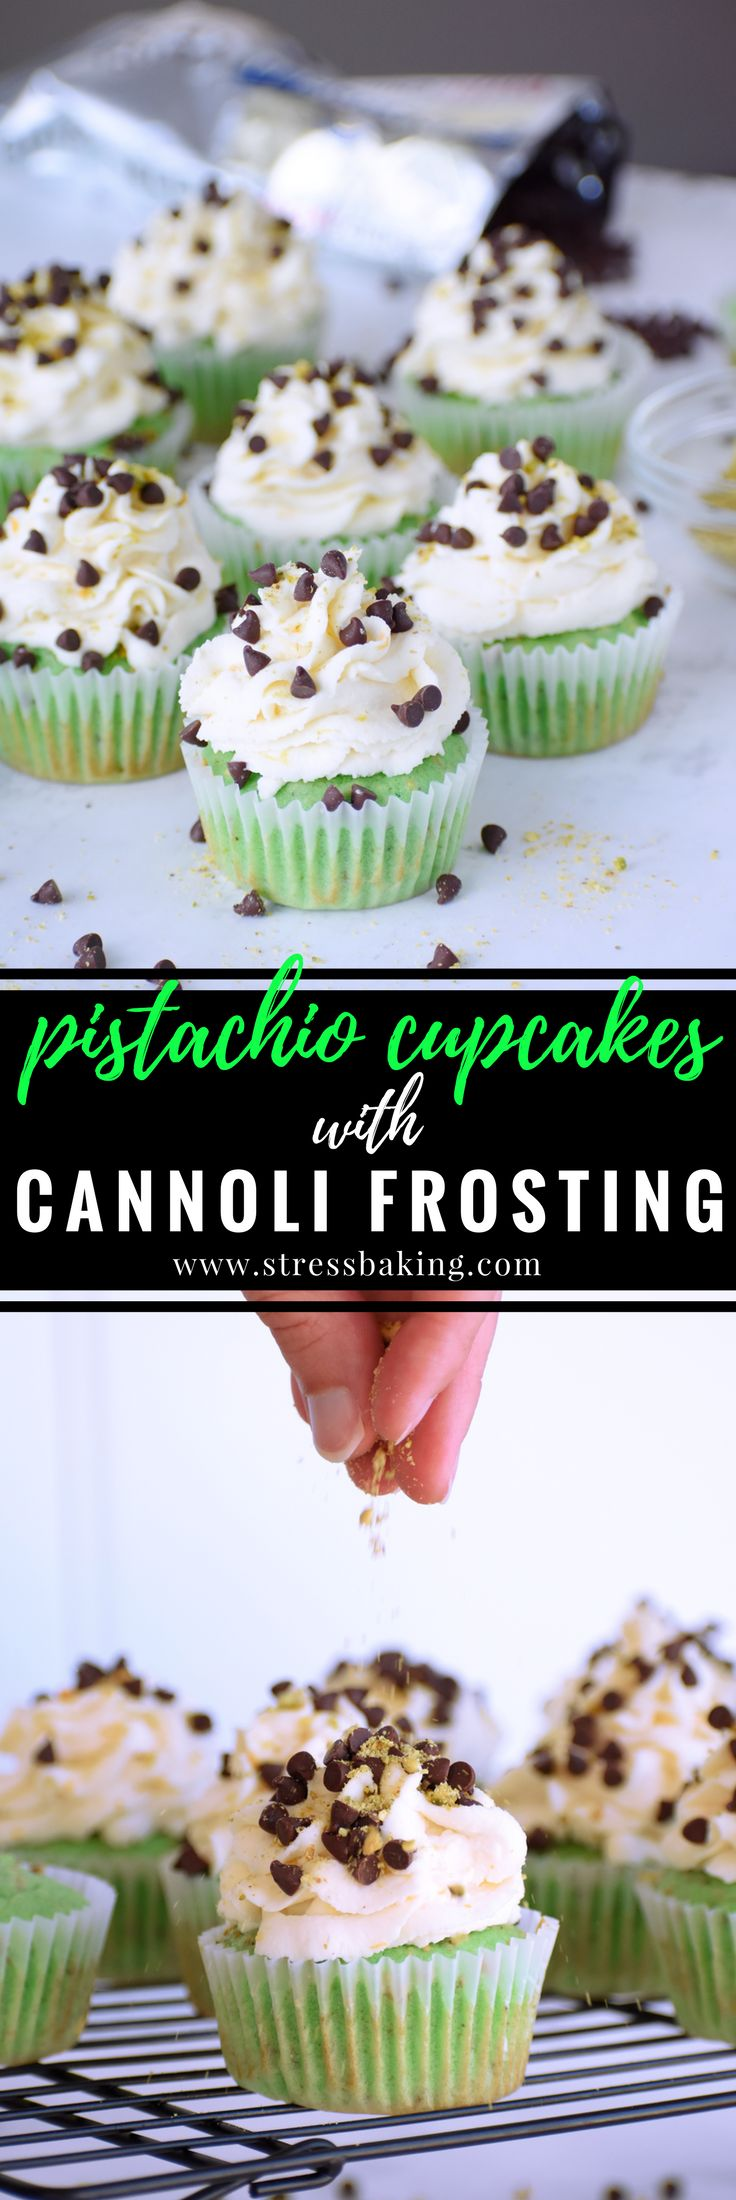 Pistachio cupcakes with cannoli frosting: Gorgeously green, light, fluffy pistachio cupcakes topped with a creamy cannoli frosting with hints of orange and lemon zest and mini chocolate chips!